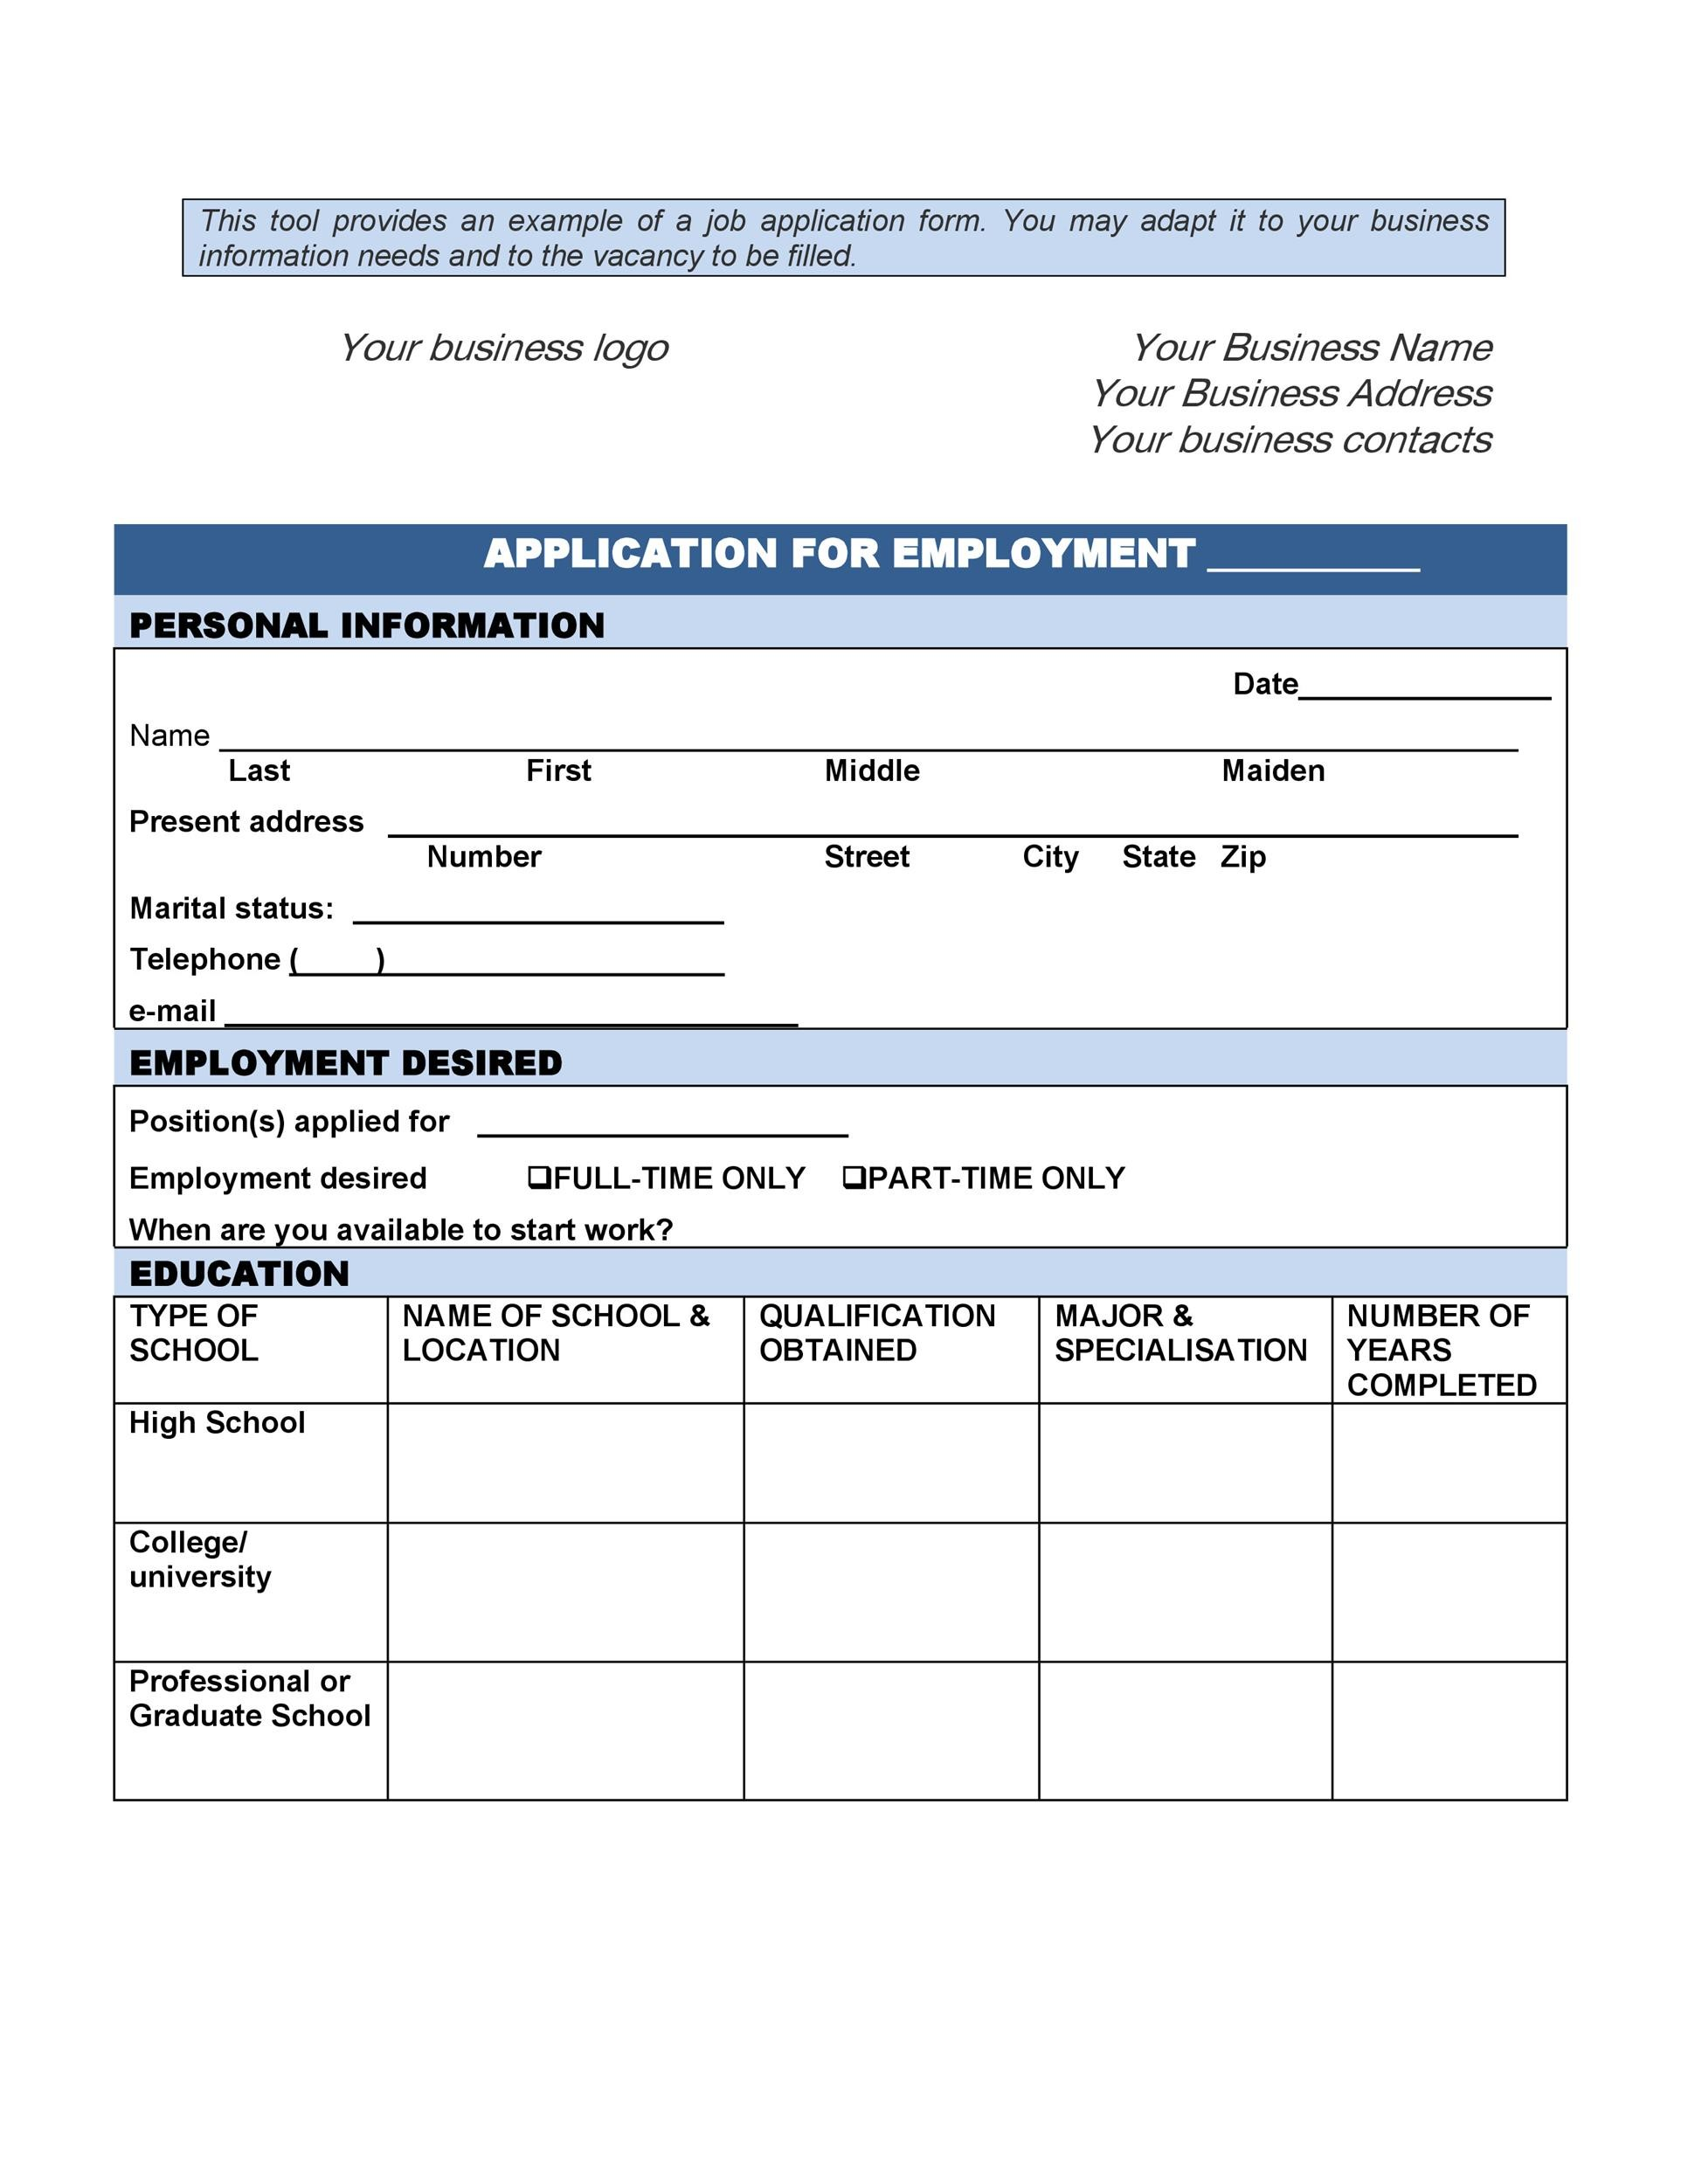 The application must be fully completed to be considered. 50 Free Employment Job Application Form Templates Printable Á… Templatelab